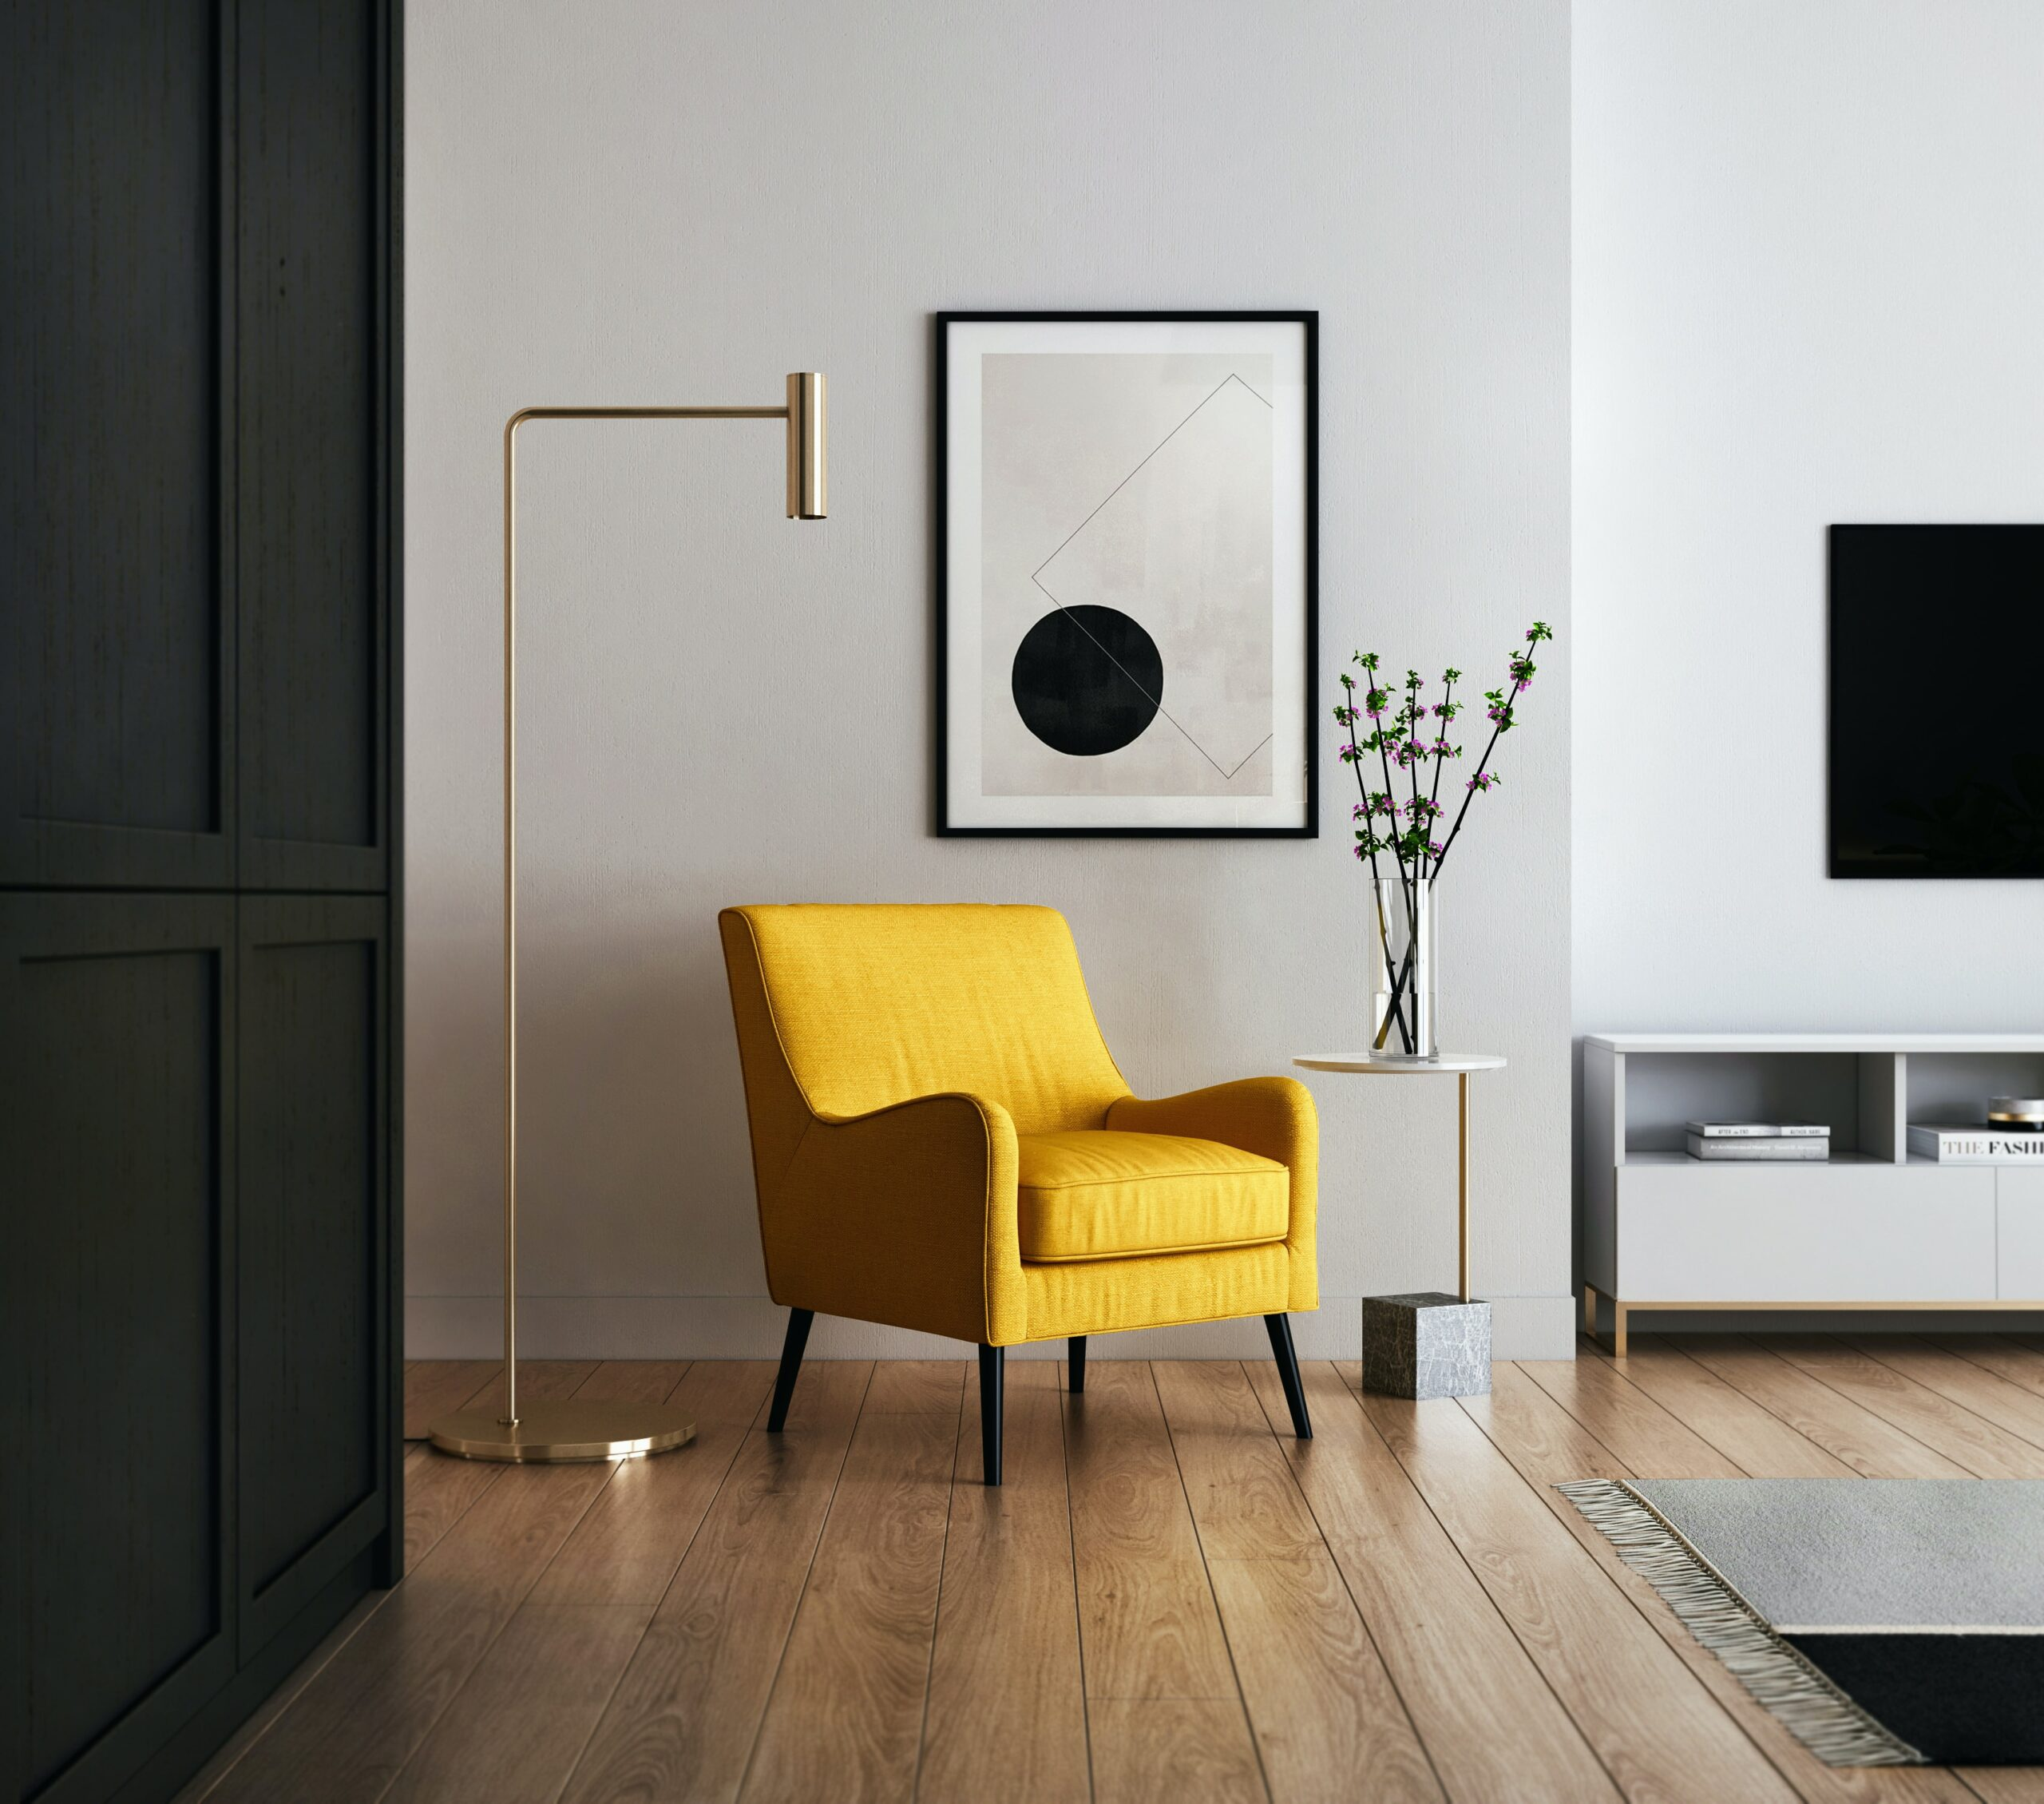 5 Ways to Add Character and Charm to Your Home